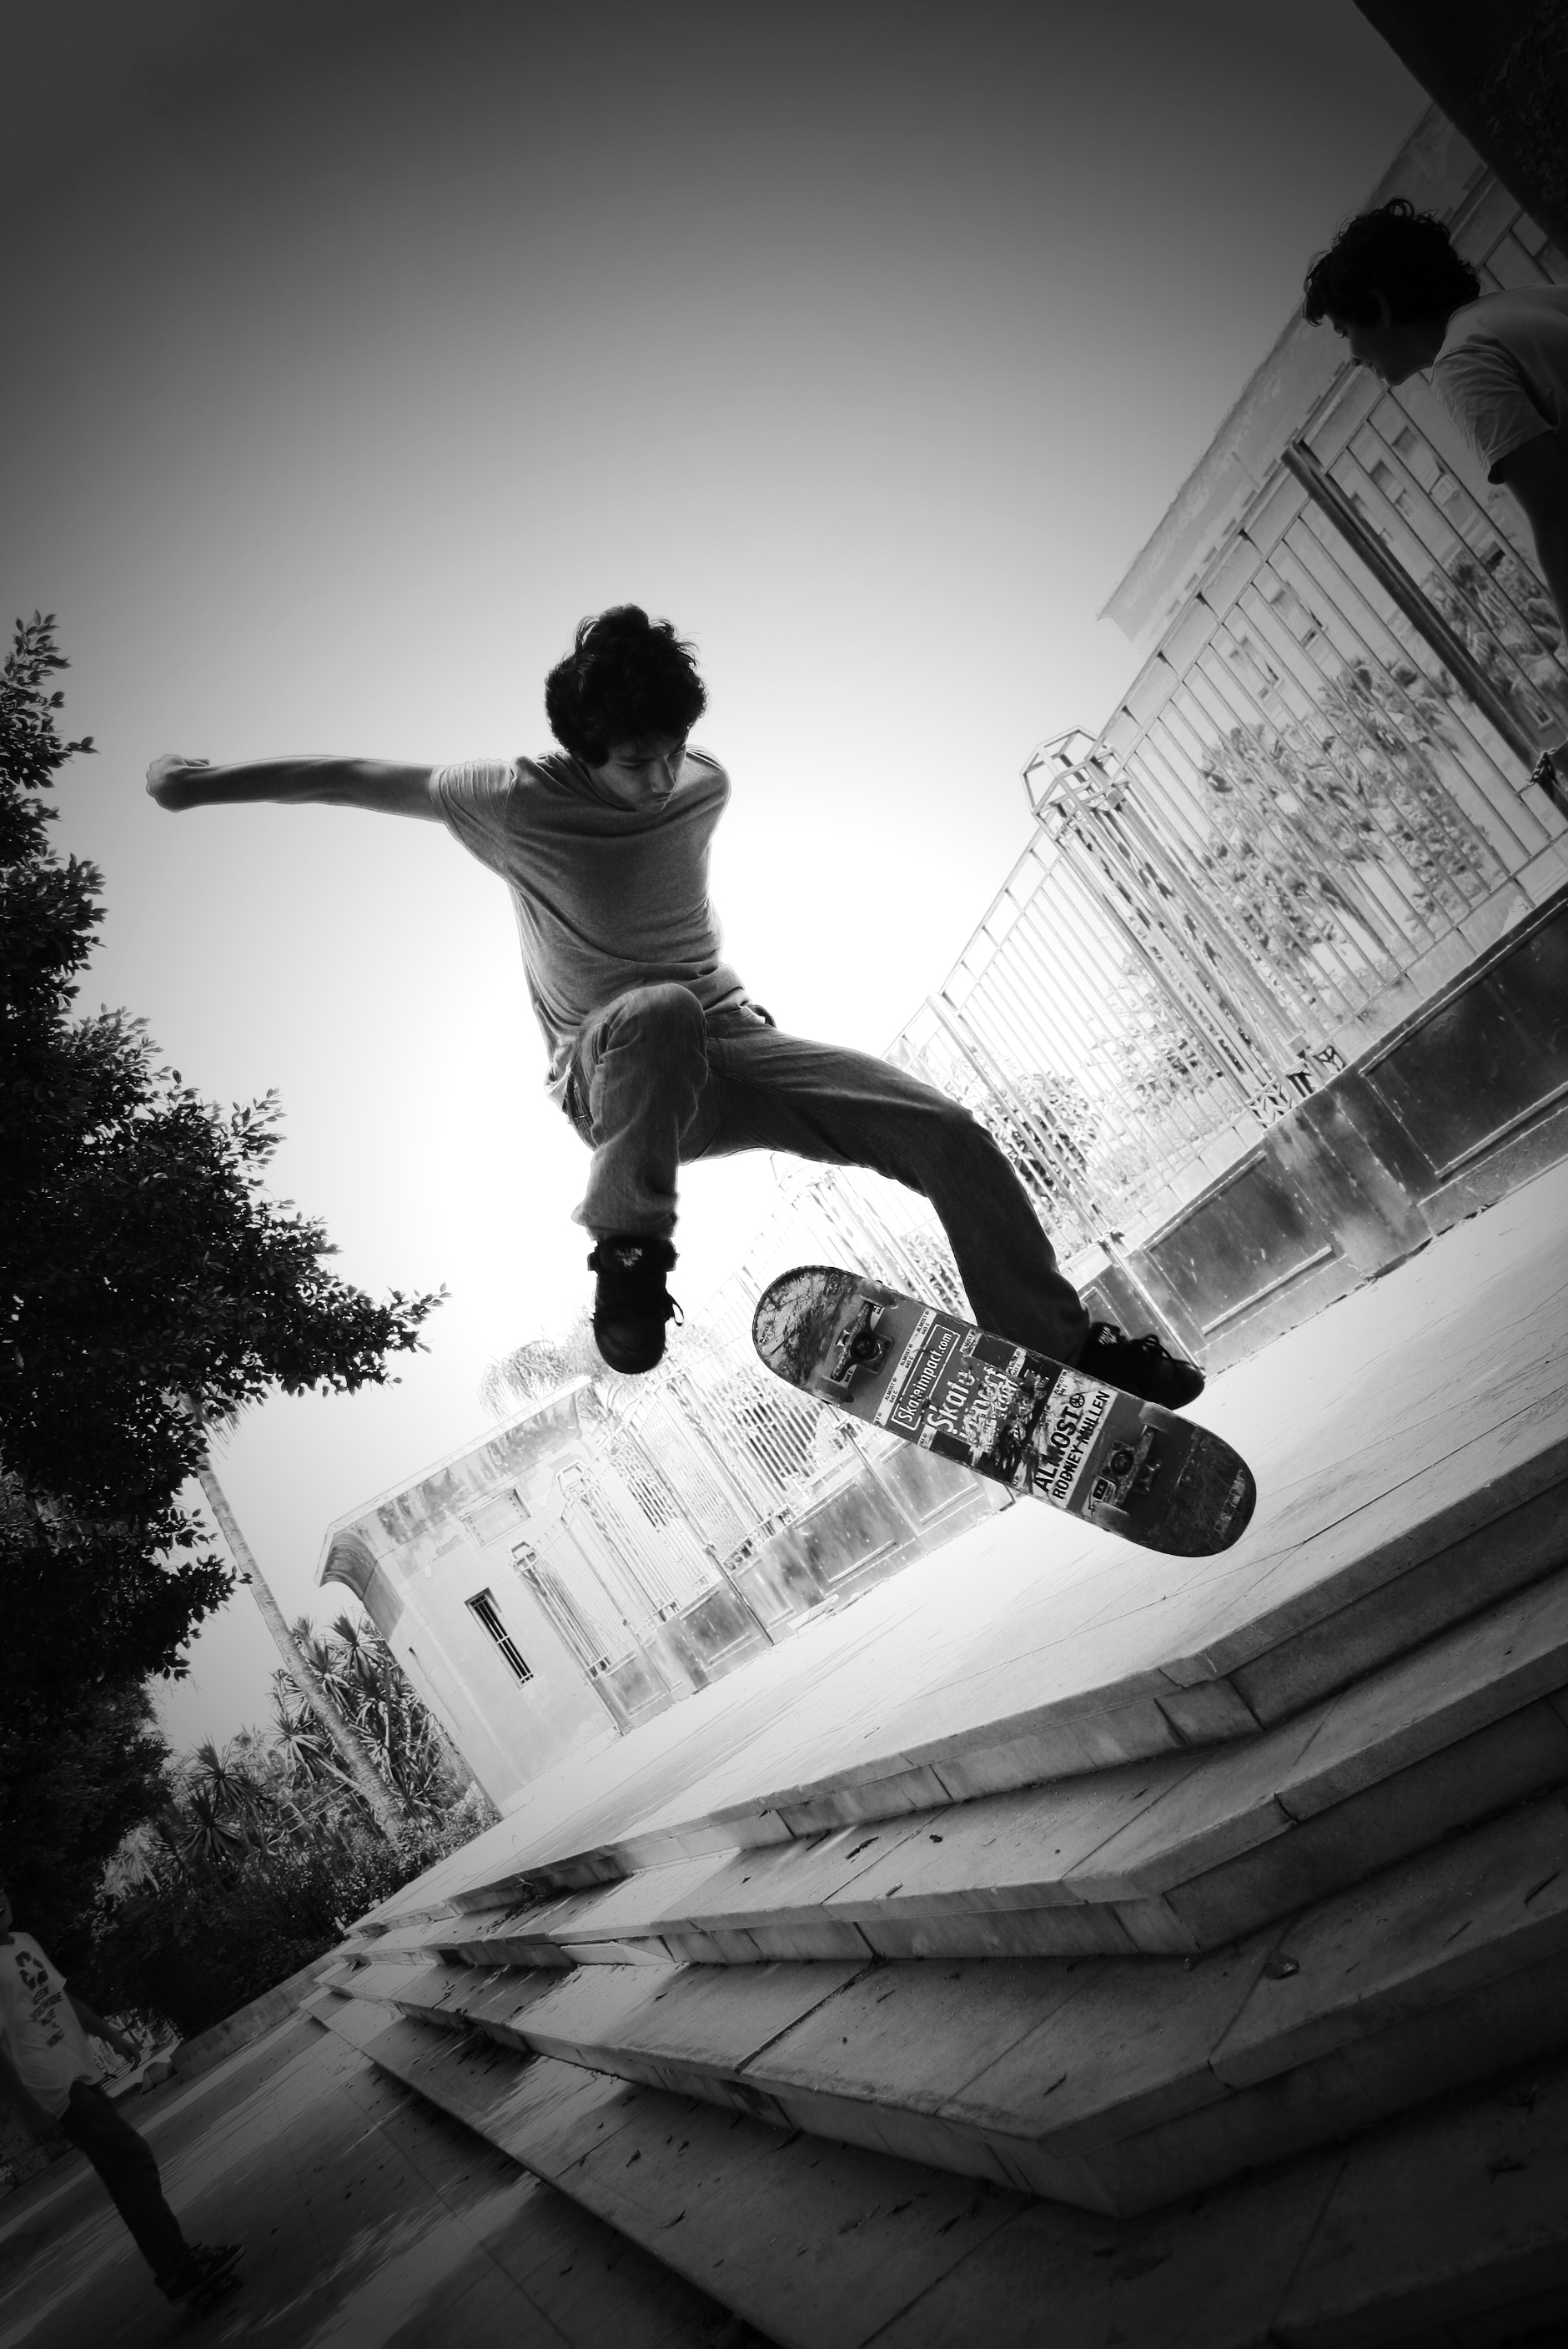 File:Moe Photography Skateboarding.jpg